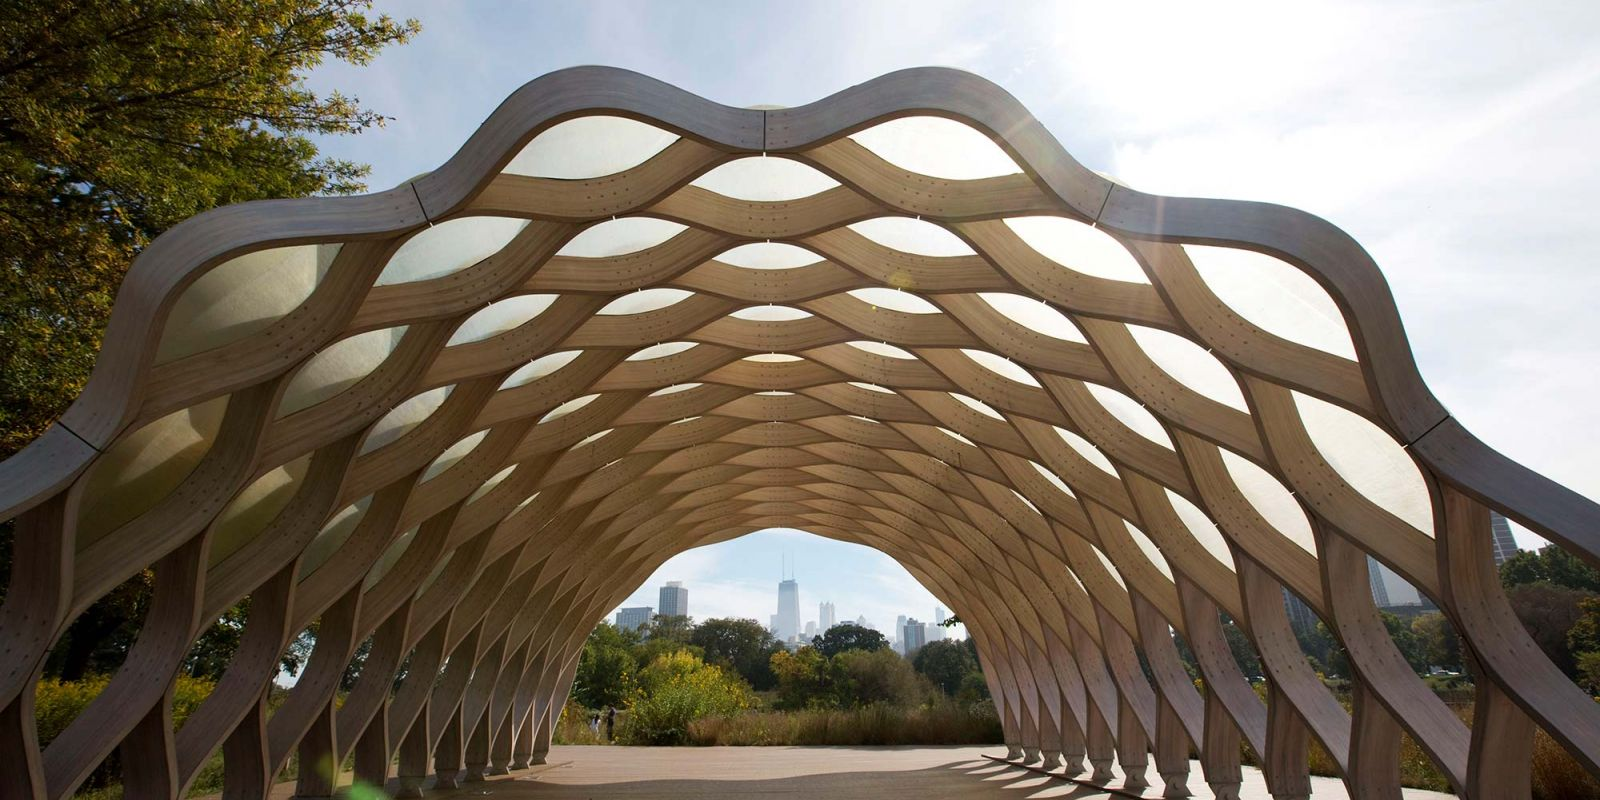 Wood Pavilion at Lincoln Park